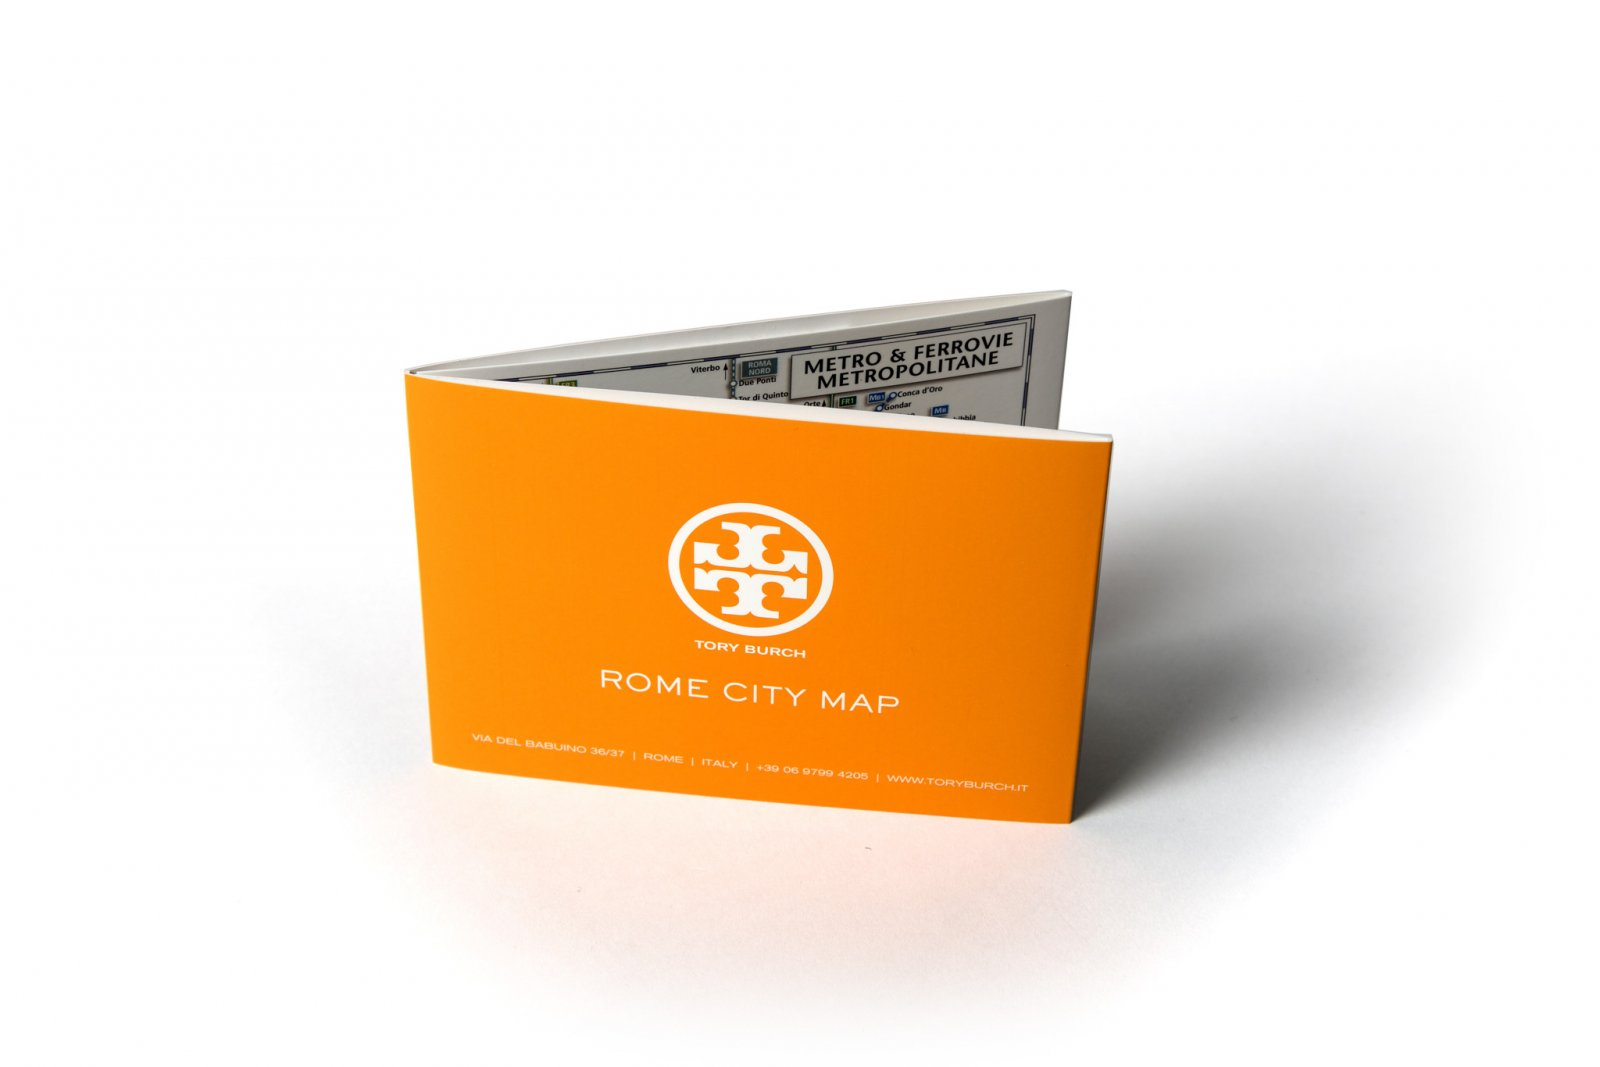 store locator guide for tory burch popout products